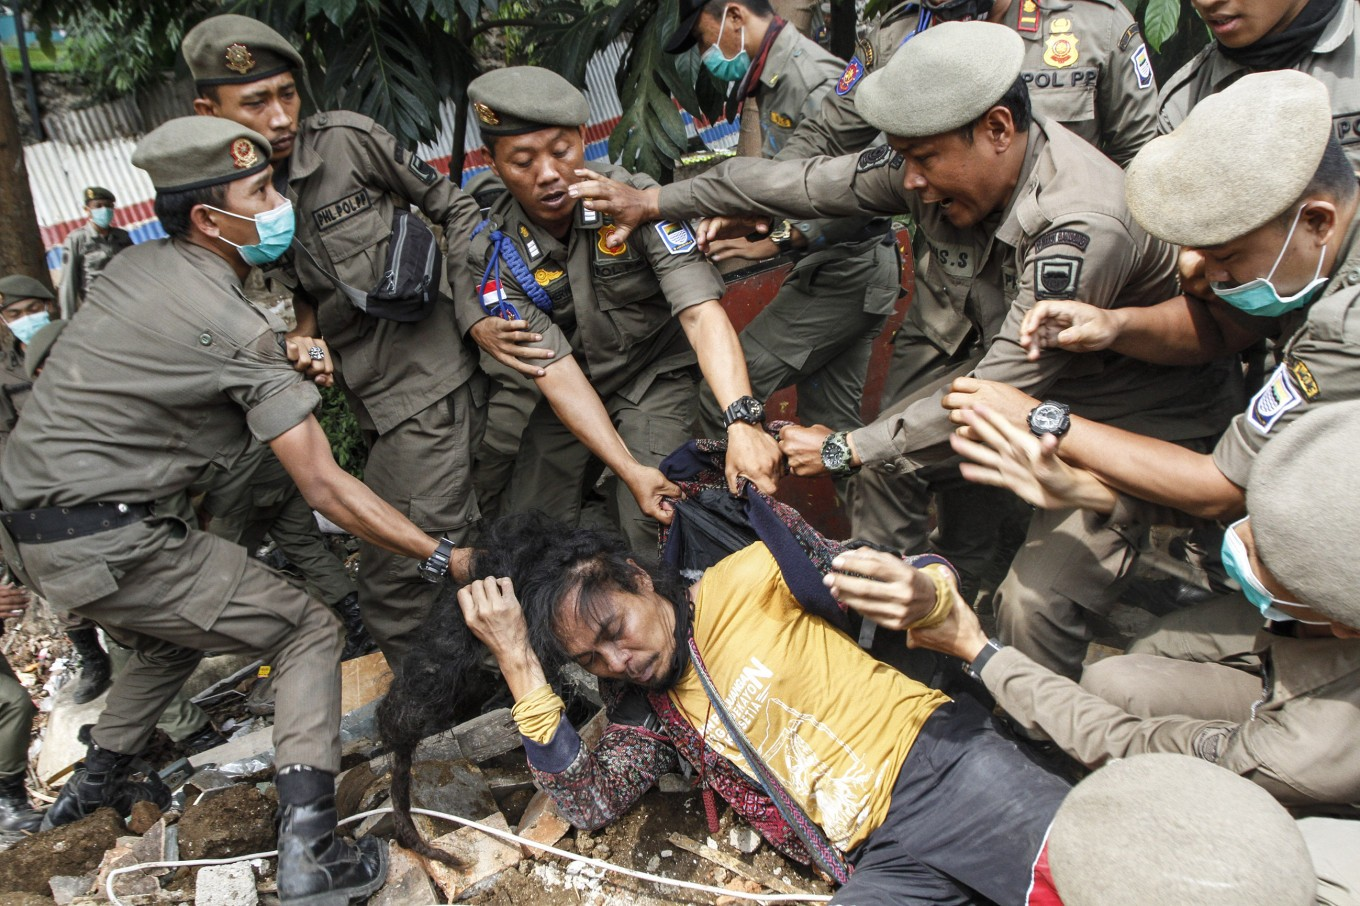 Bandung brawl as residents resist 'illegal' evictions